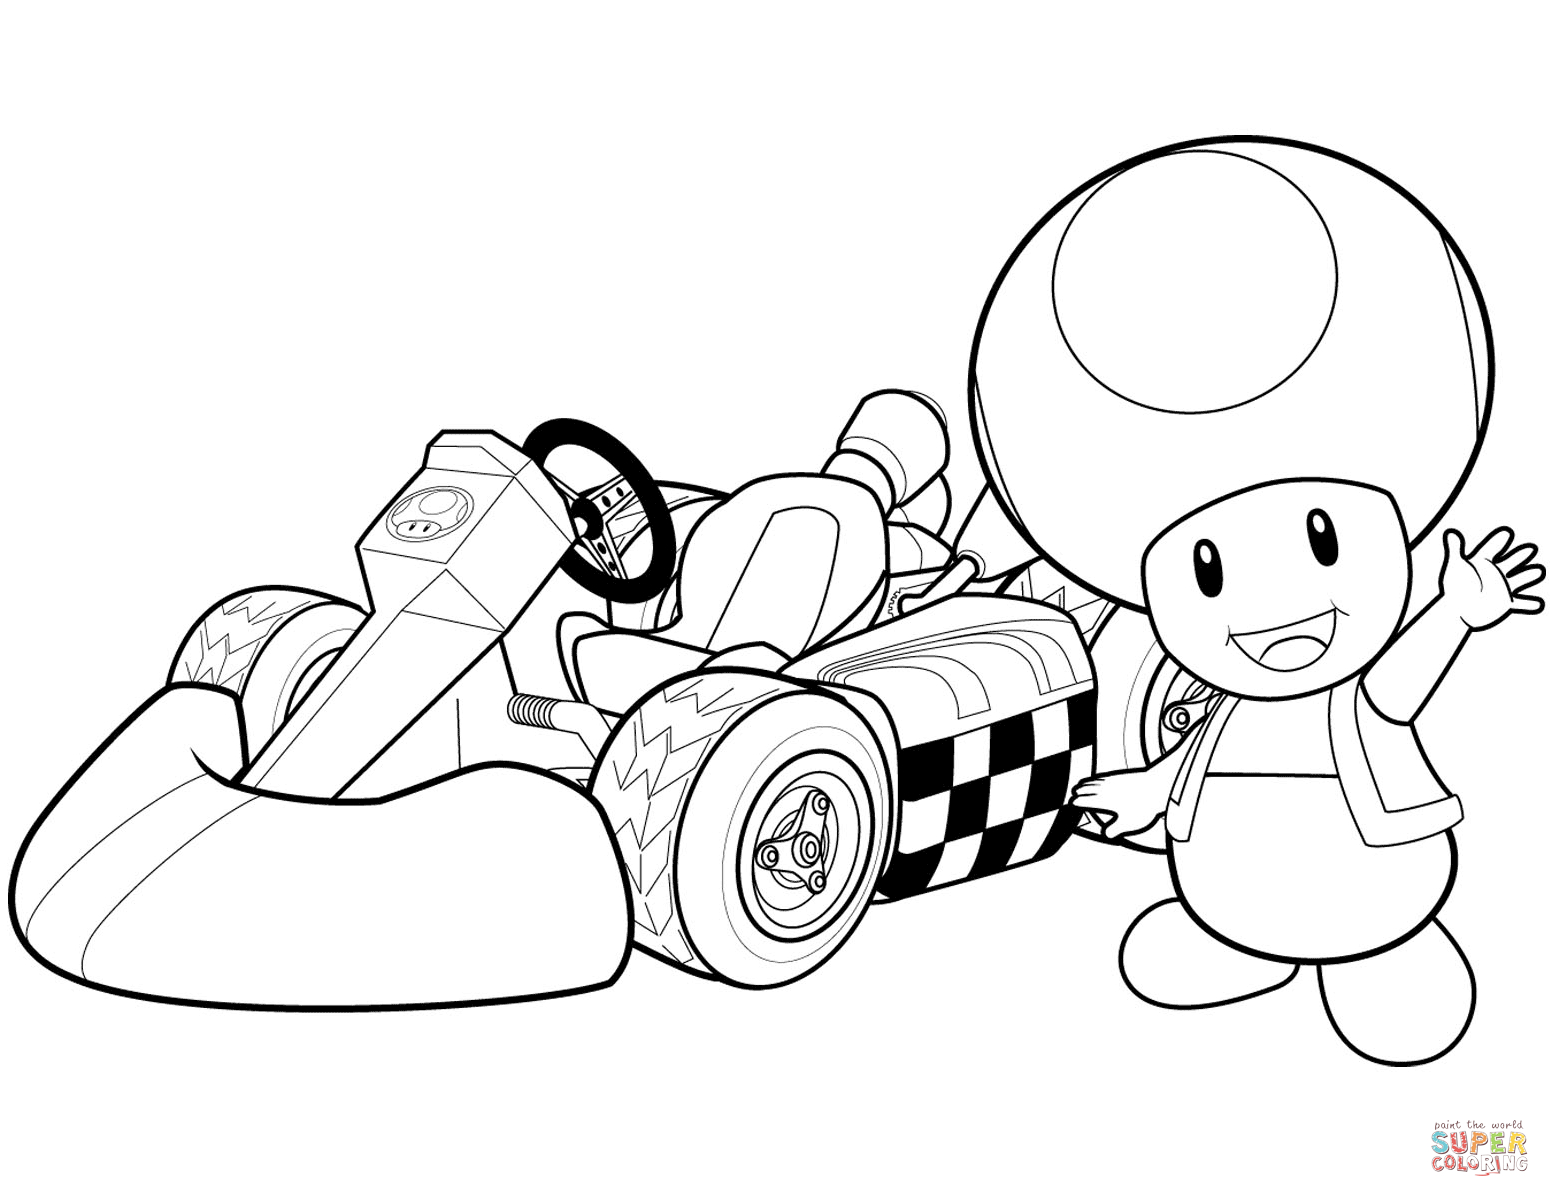 Toad And Toadette Coloring Pages Toad In Mario Kart Wii Coloring Page Free Printable Coloring Pages